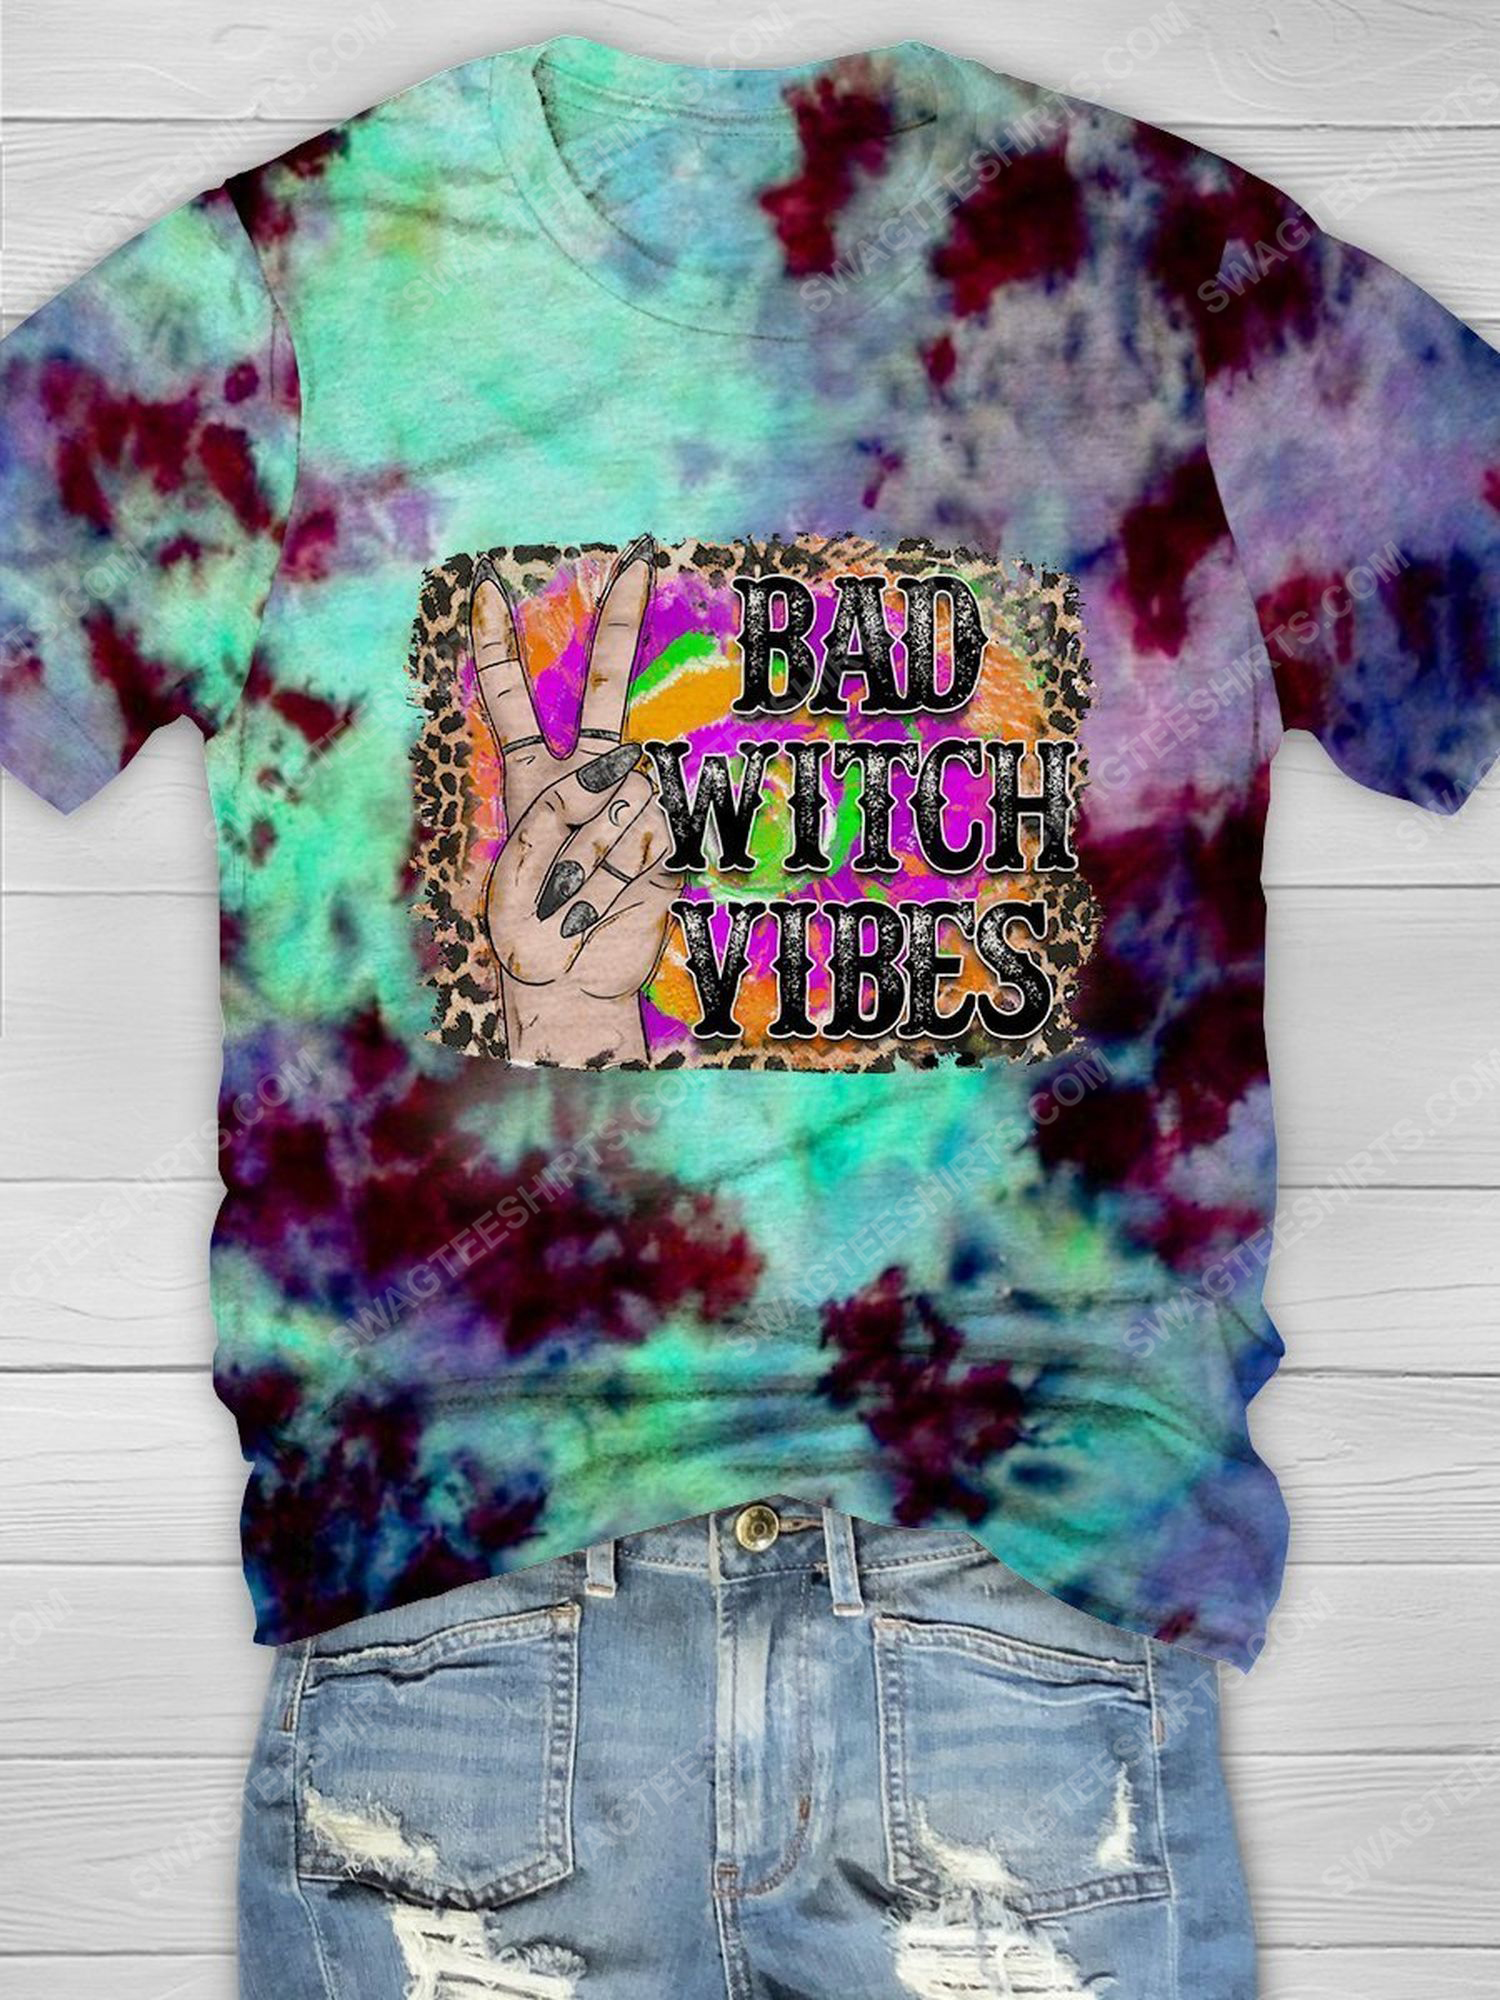 Halloween bad witch vibes tie dye shirt 1 - Copy (2)